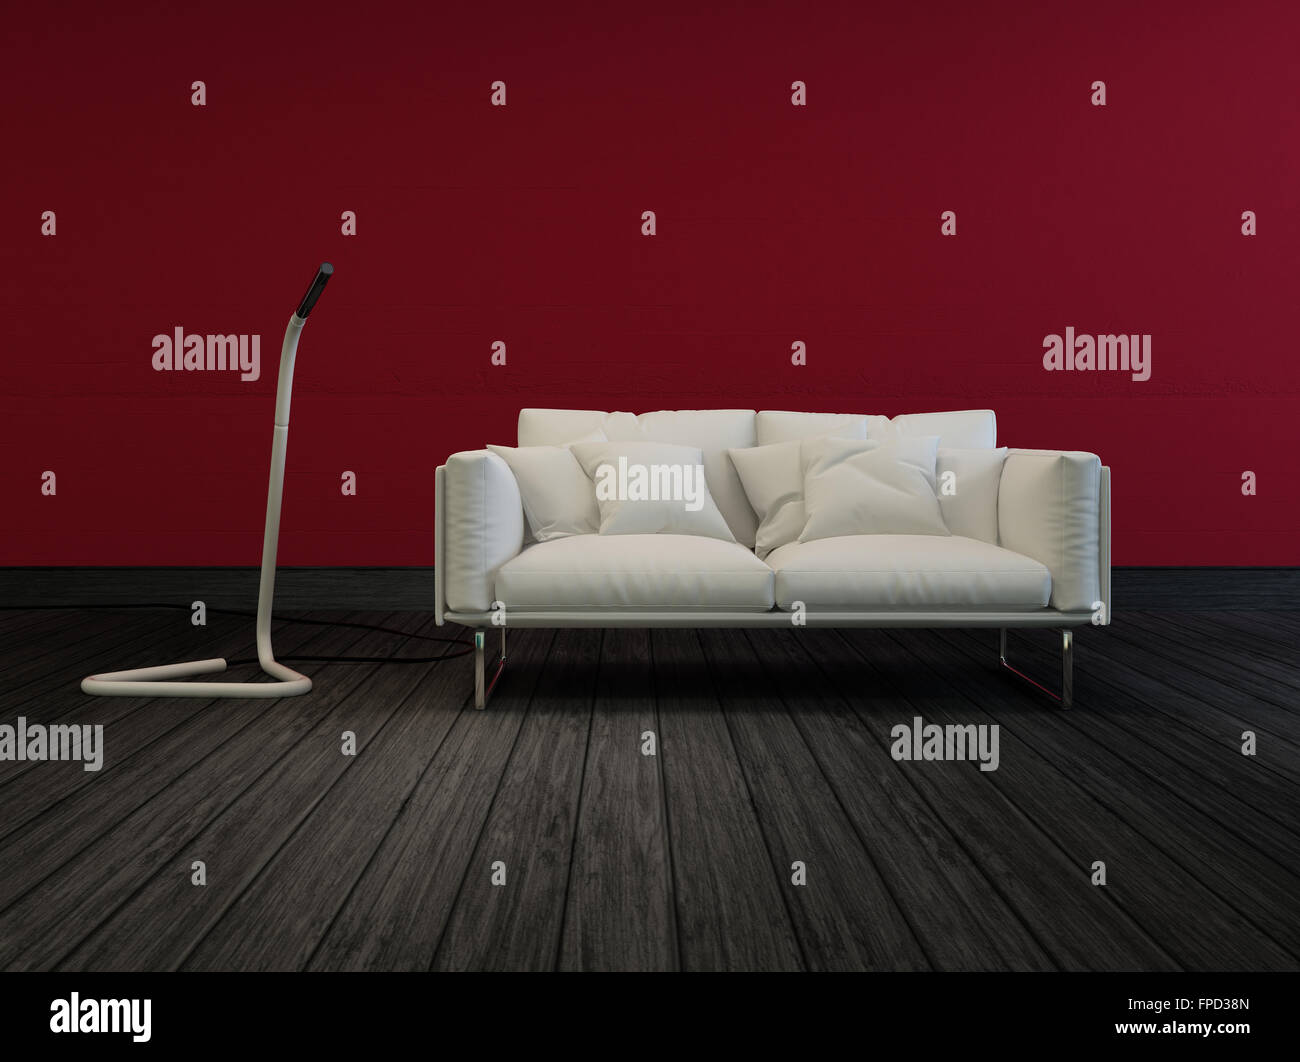 Small White Two Sealer Sofa In A Sombre Room With Red Walls And A